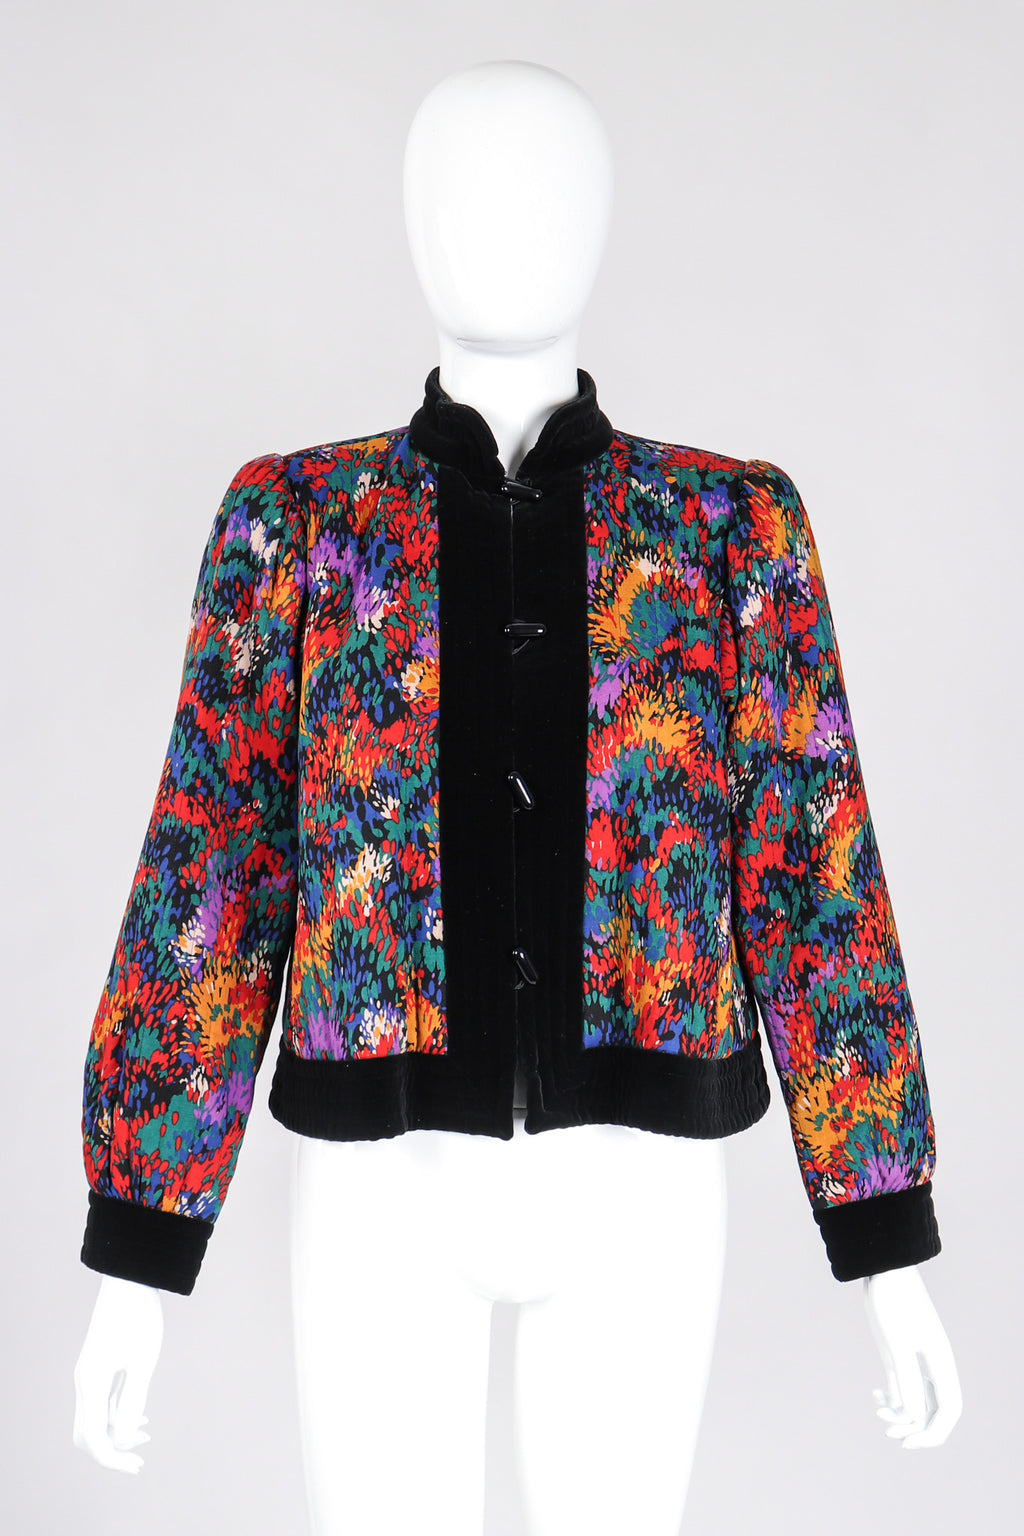 1df9ee2fde5 Recess Los Angeles Vintage YSL Yves Saint Laurent Russian Collection  Quilted Rainbow Splatter Print Folk Jacket